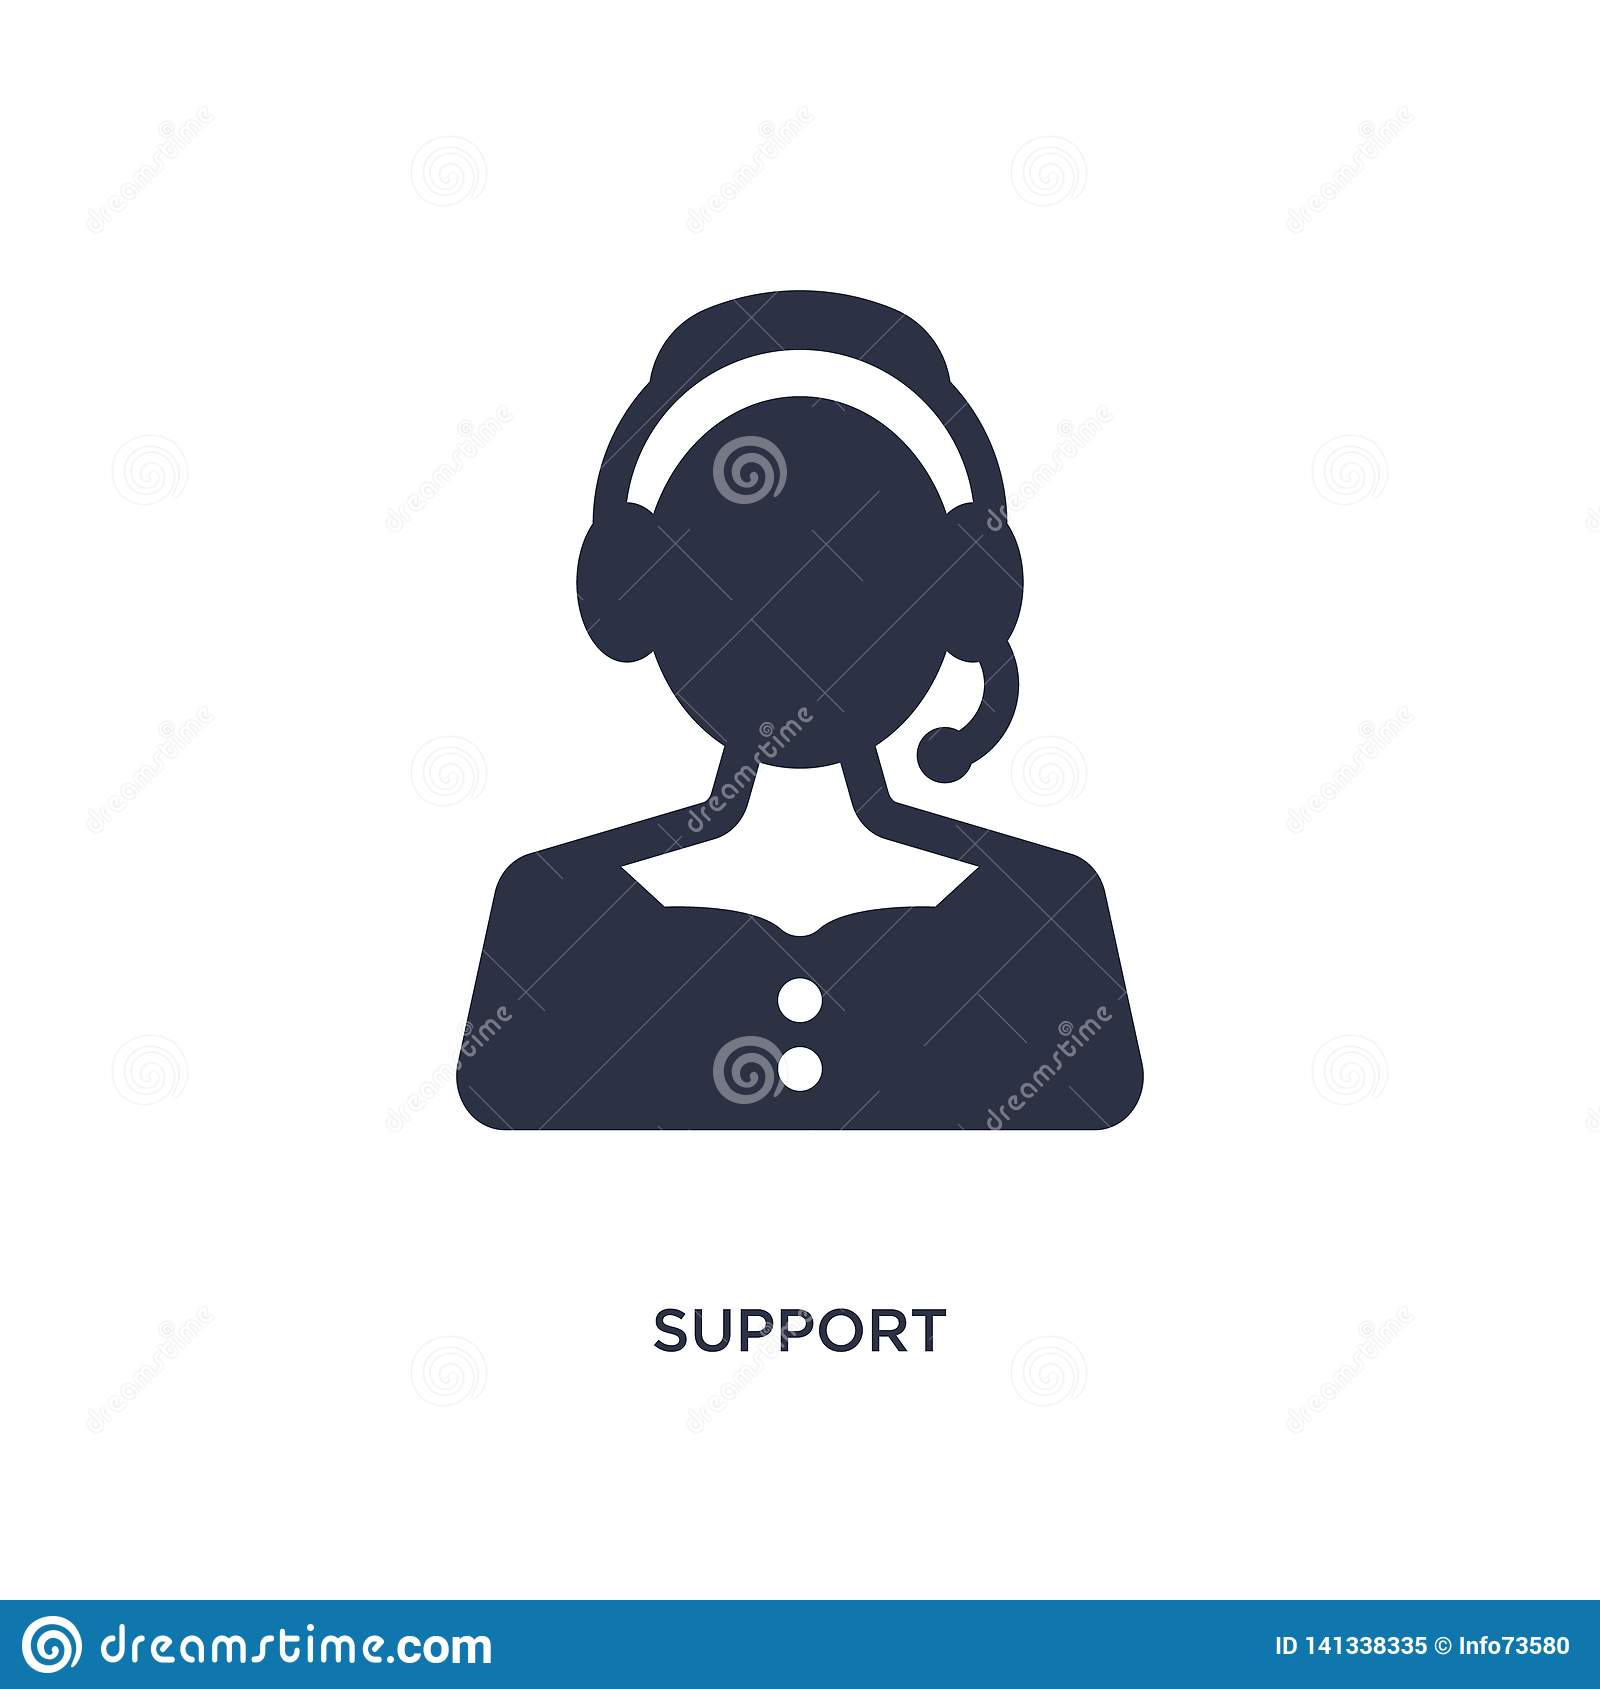 support icon on white background. Simple element illustration from customer service concept